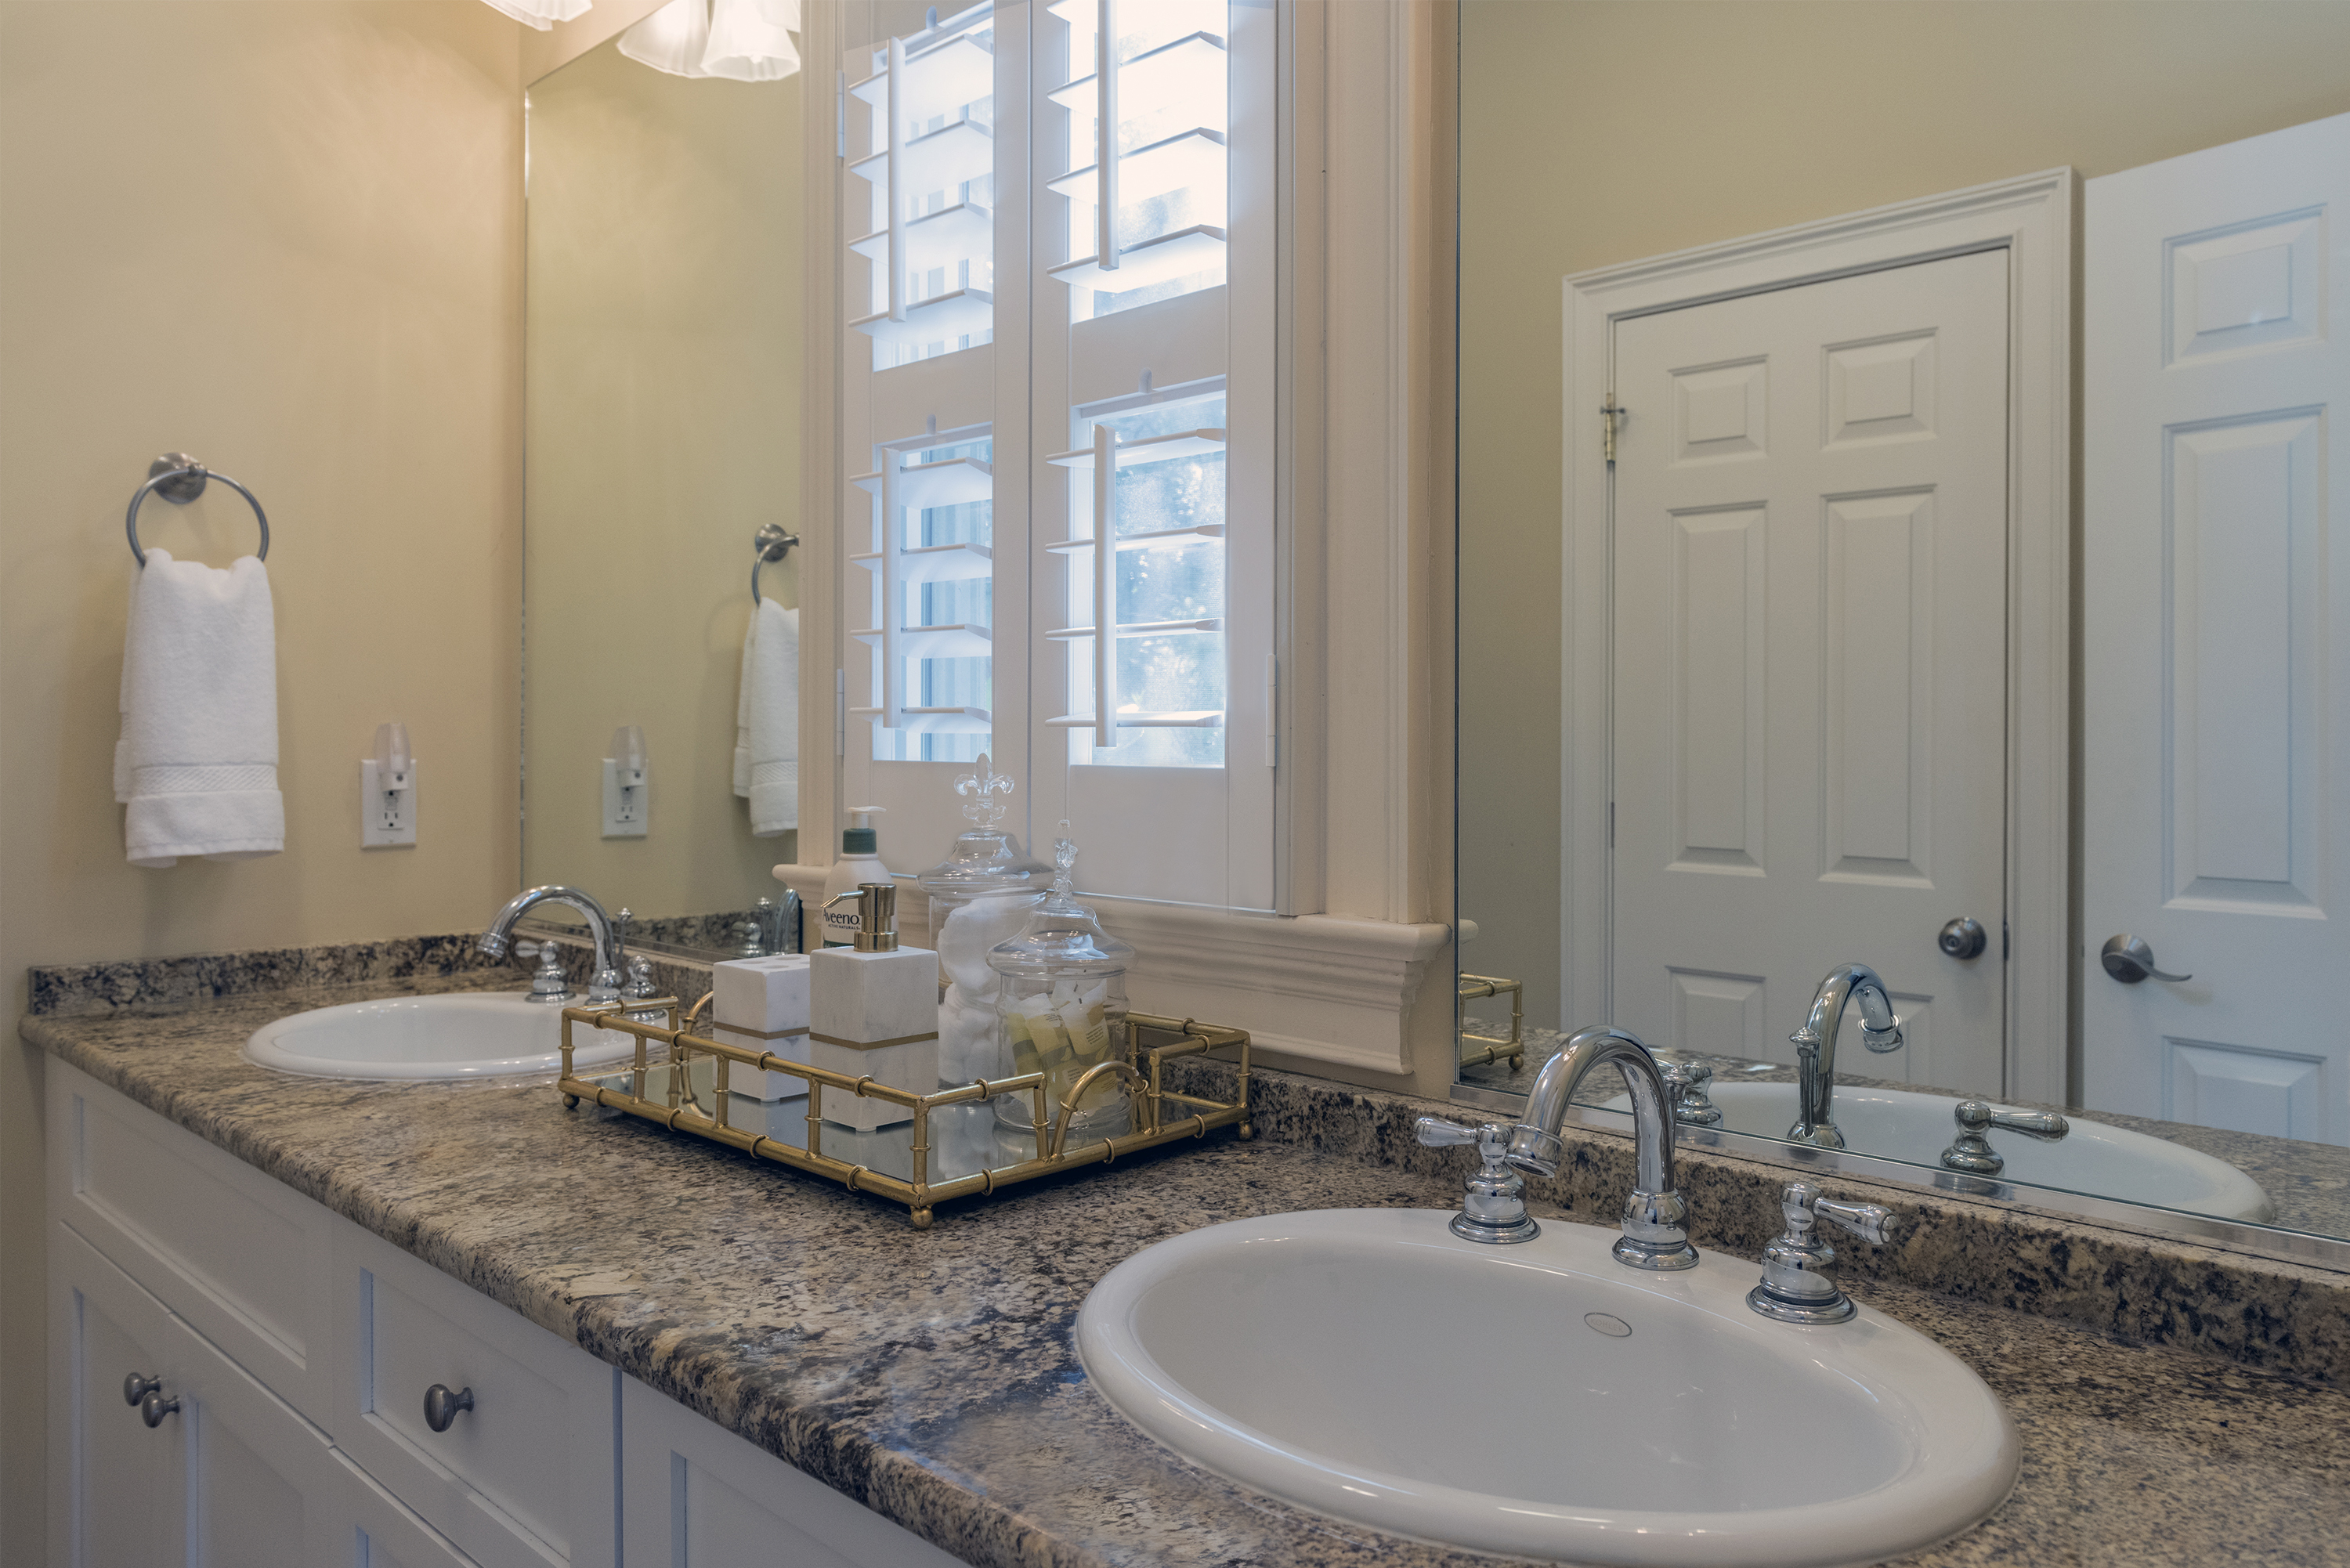 The double sink vanity in the master bath is flanked by windows for plenty of natural light.